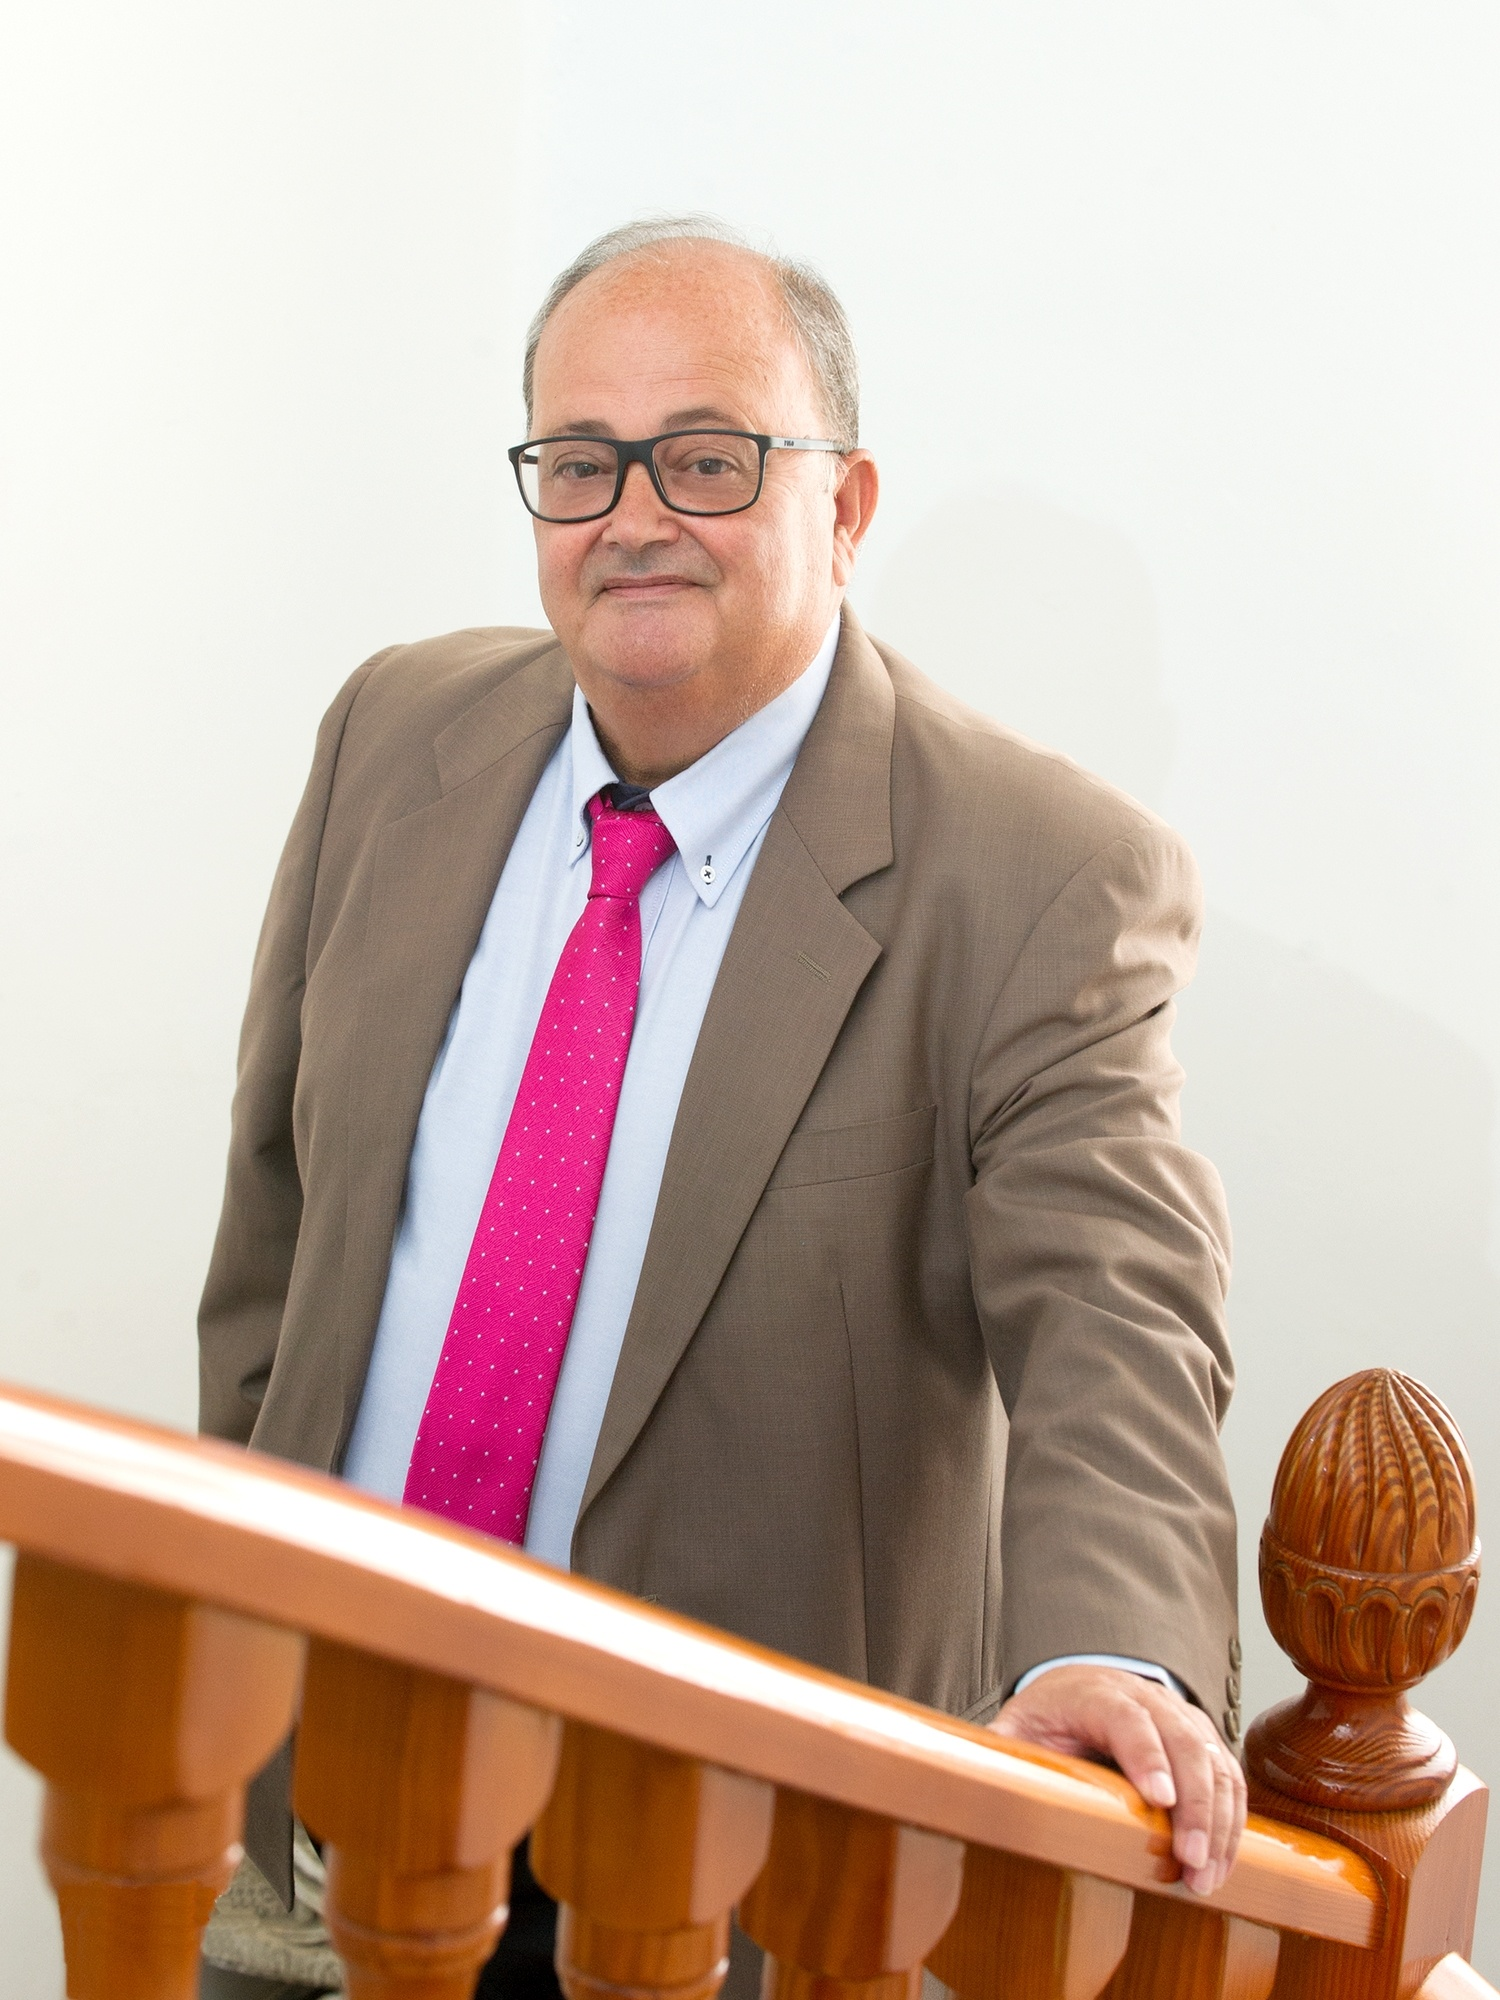 Francisco Rebollo Mohedano